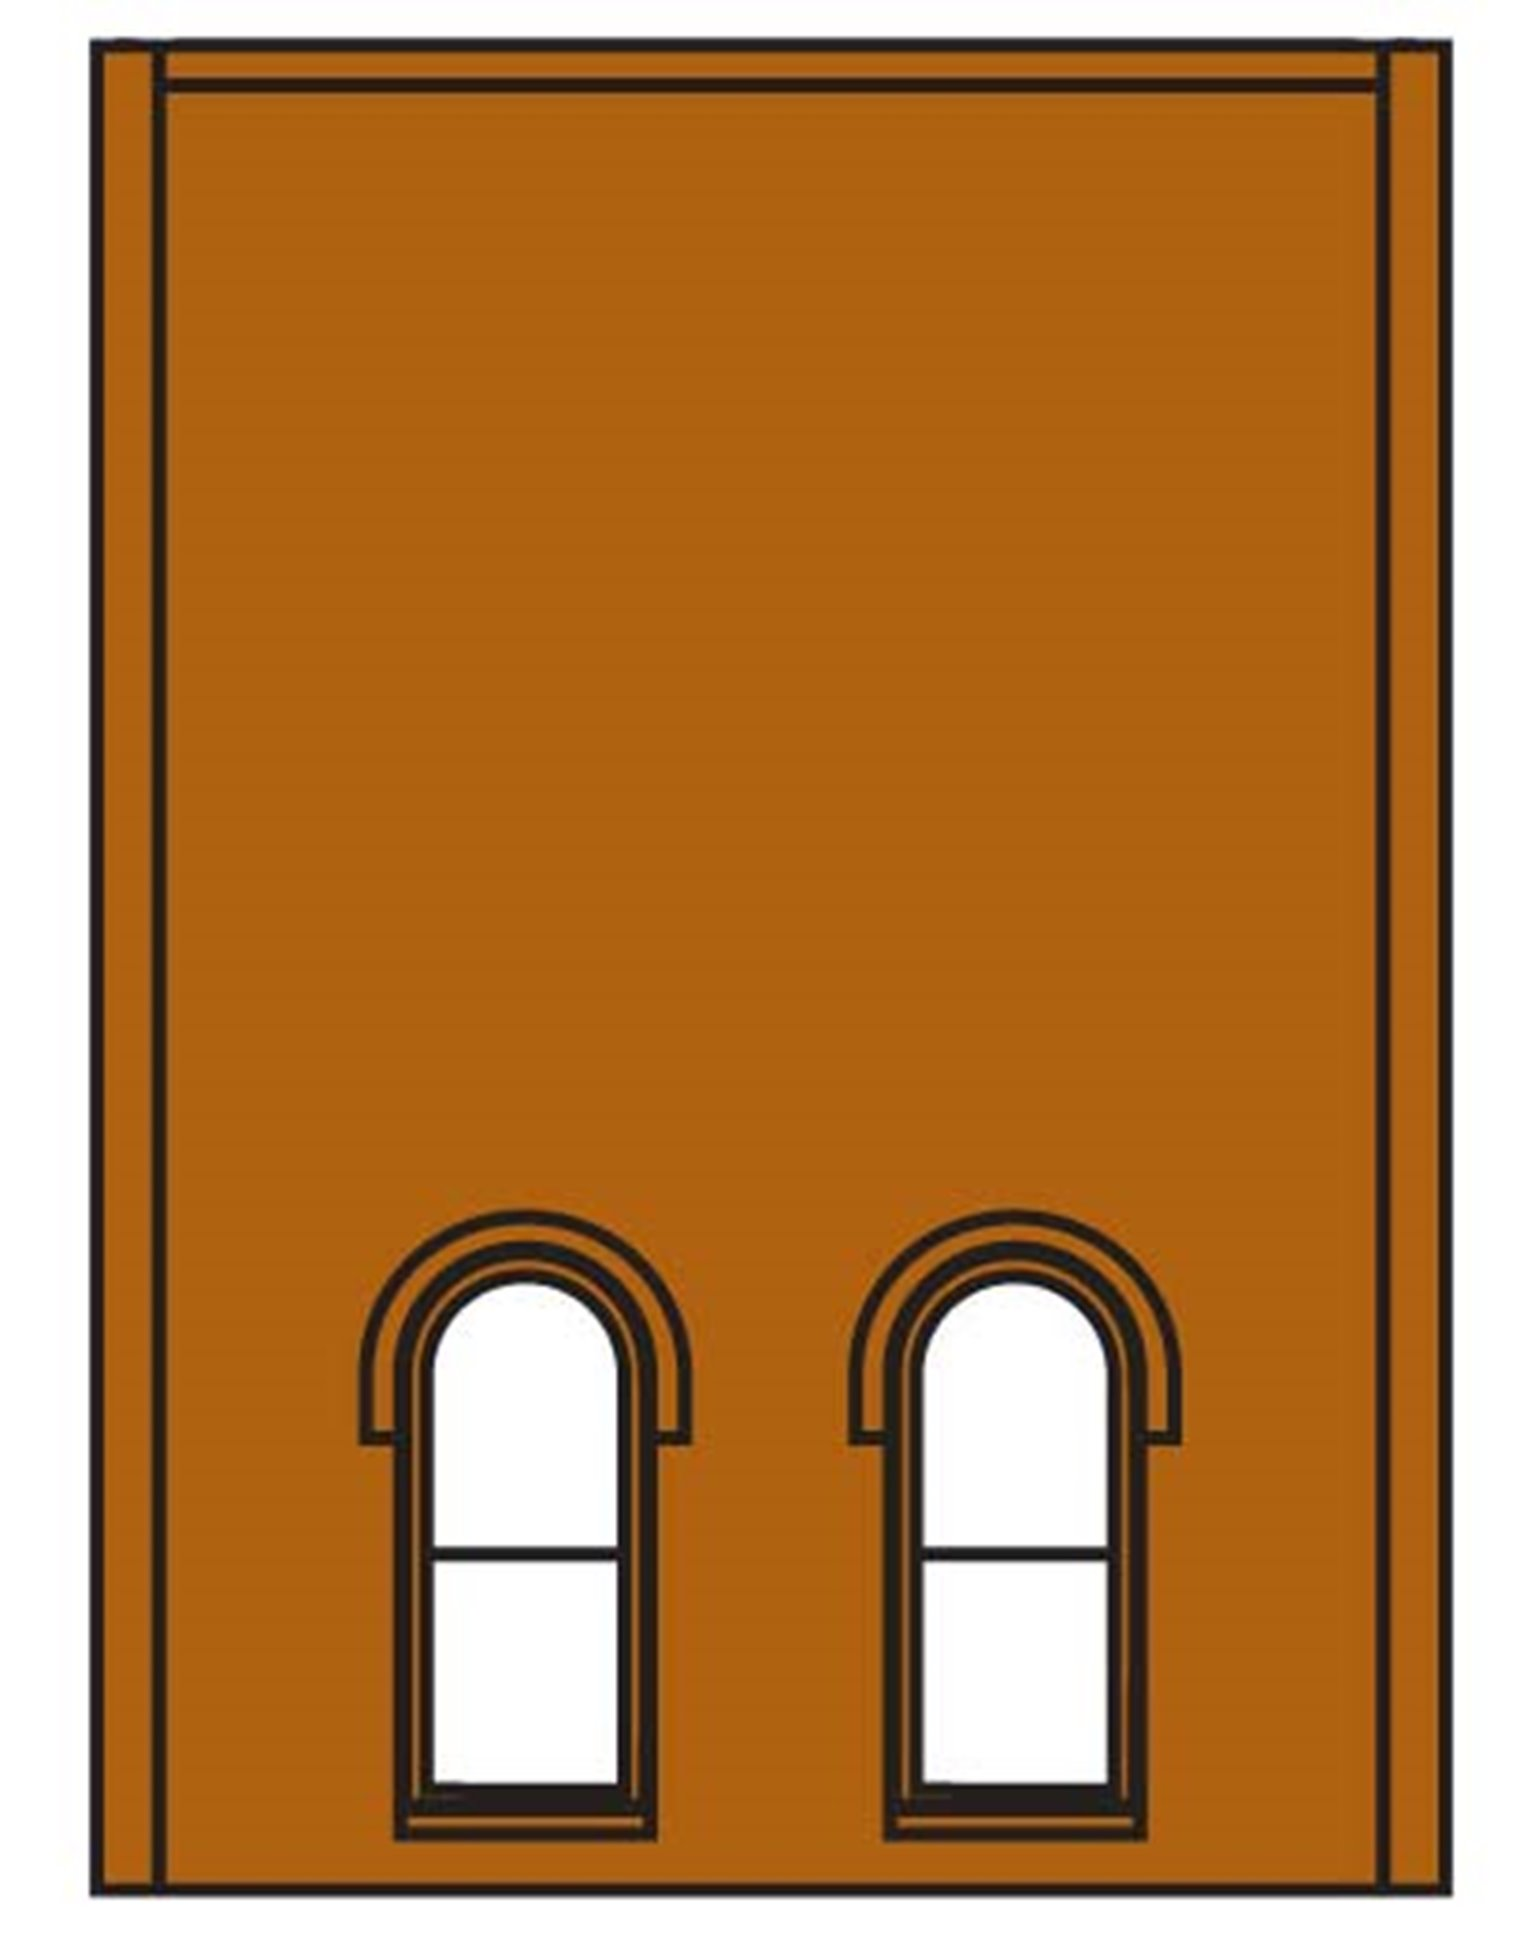 Two Storey Lower Arched 2 Windows